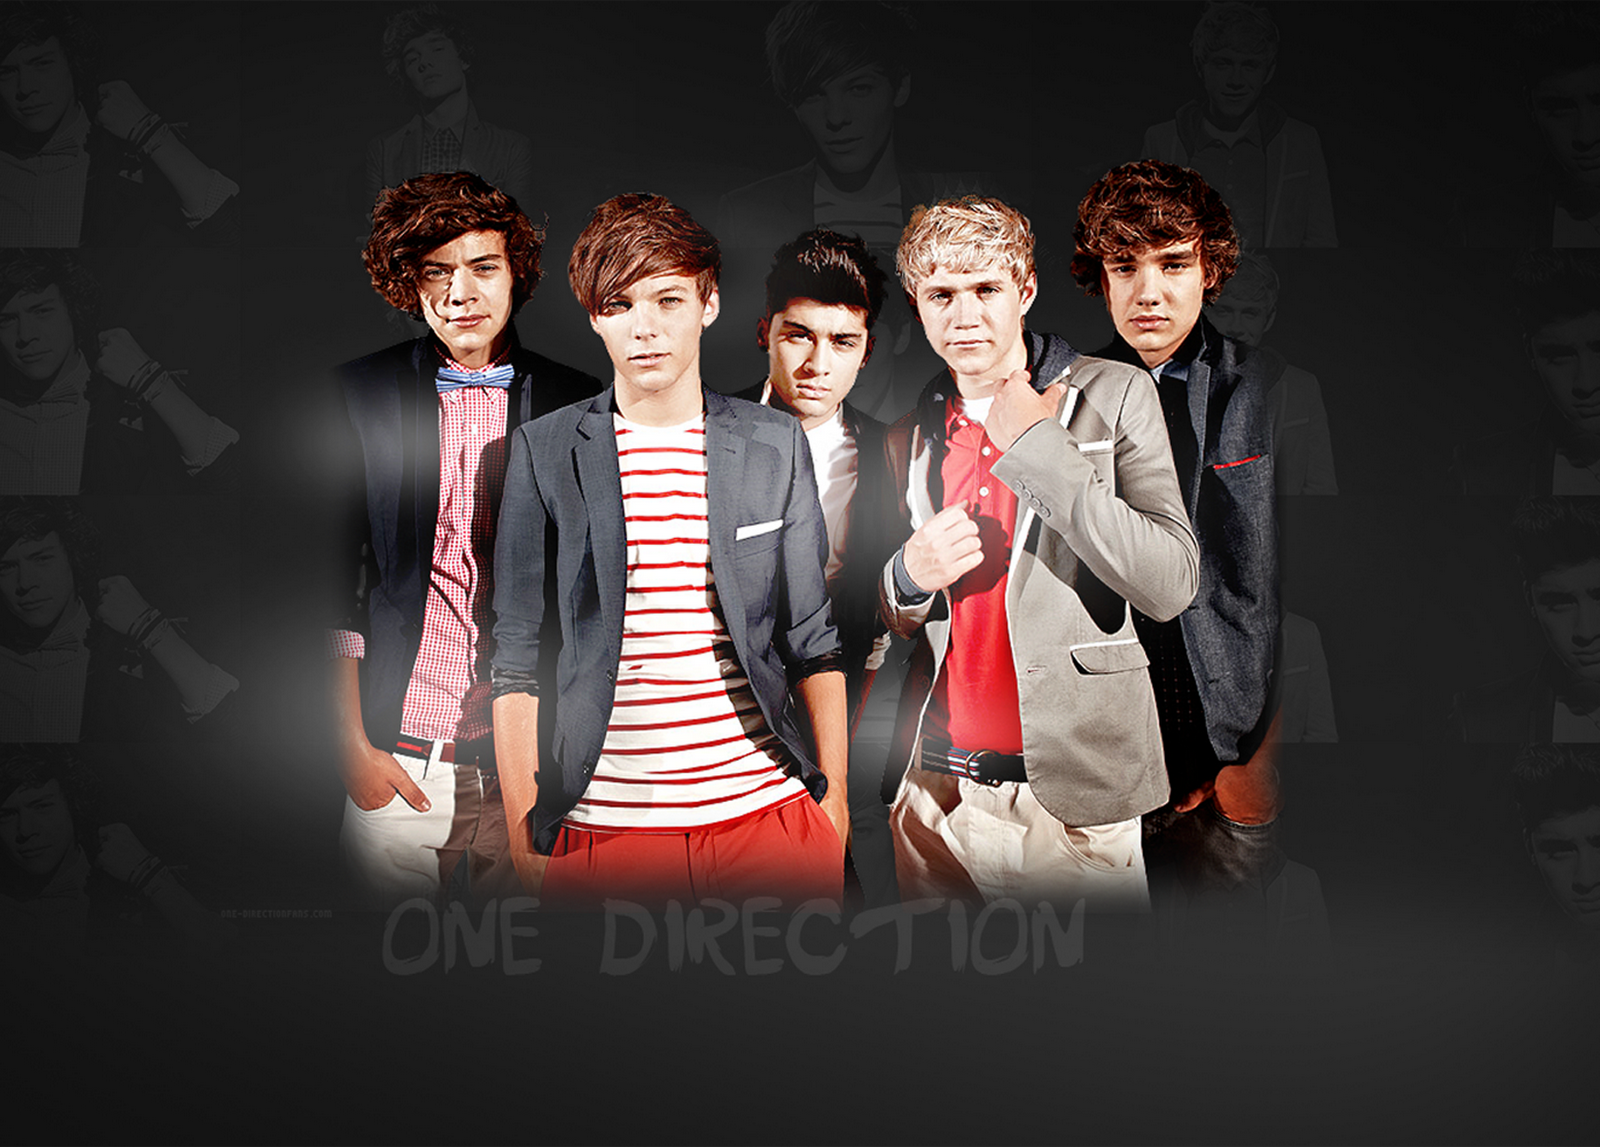 one direction wallpaper for iphone 5 Photo 1600x1147